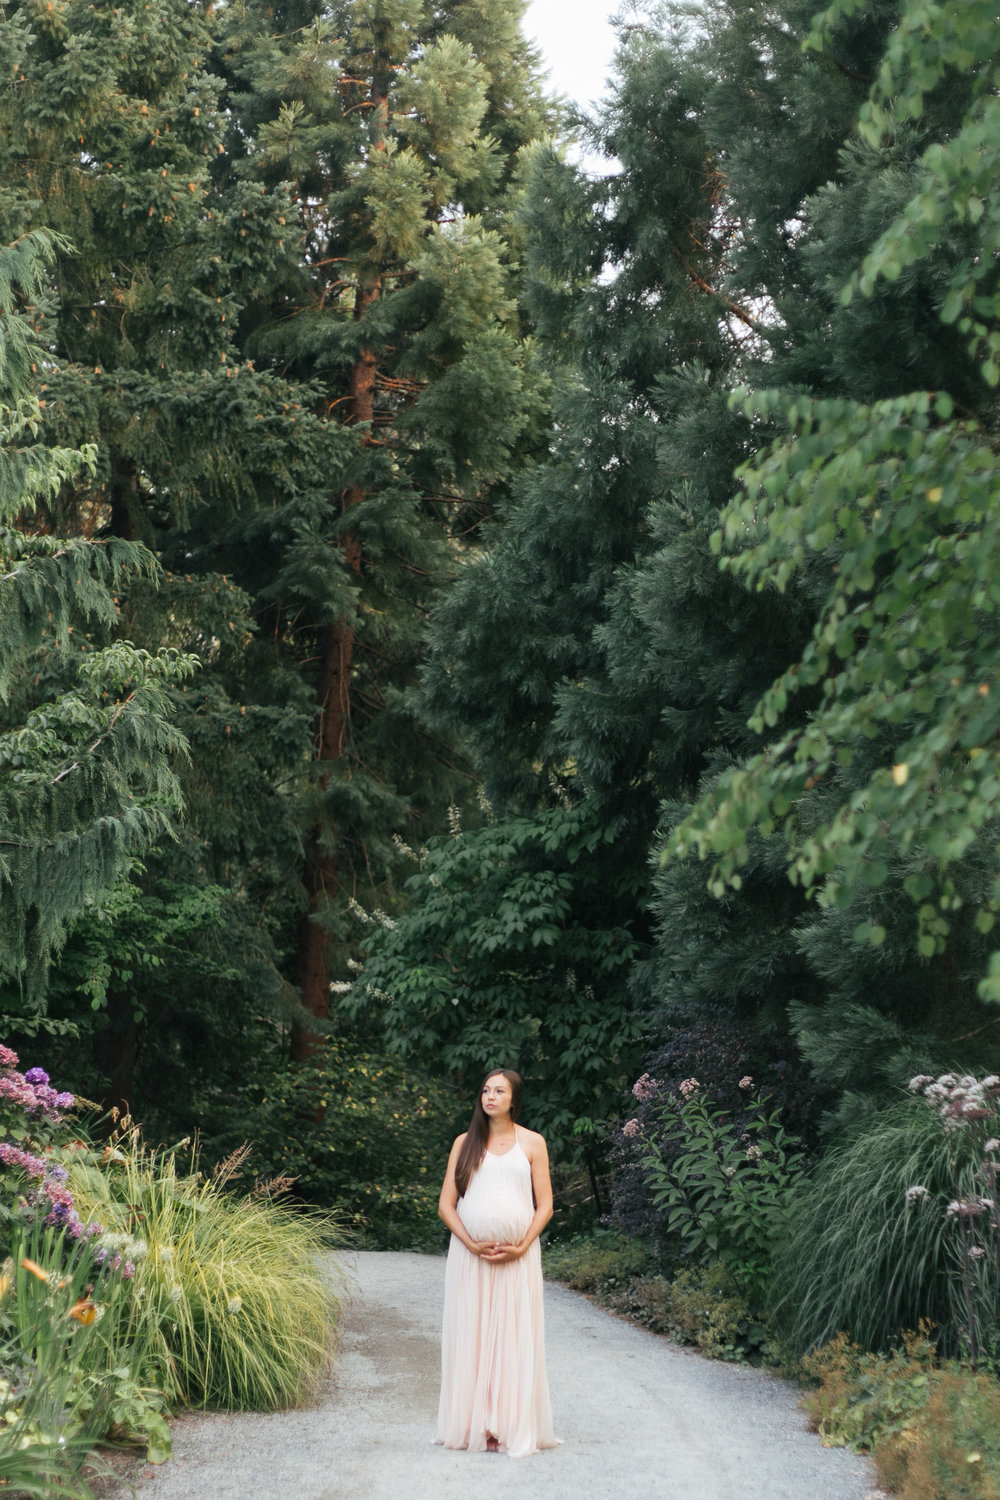 Seattle outdoor natural light maternity photos in Bellevue Botanical Gardens-20.jpg